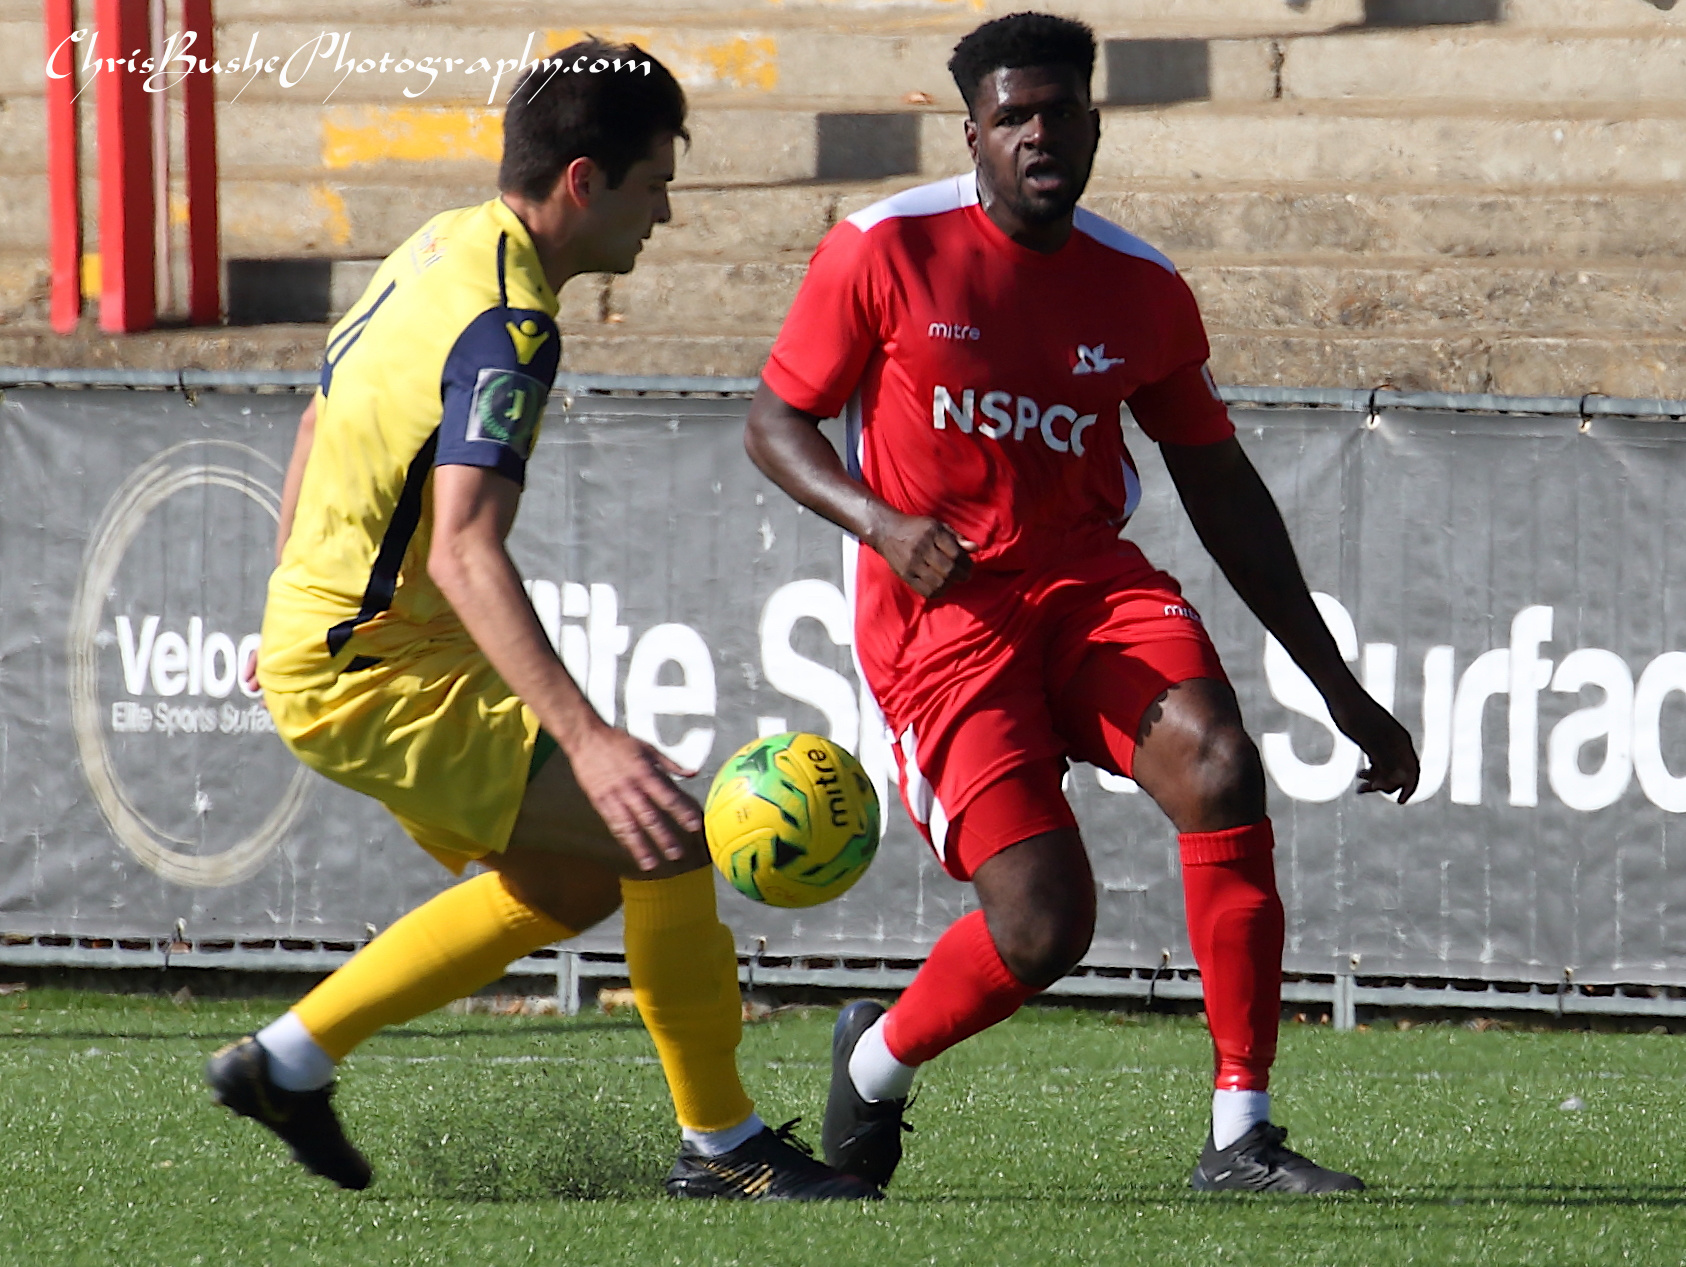 Paris Hamilton-Downes Carshalton captain attacking left wing .Defender Joe Christou